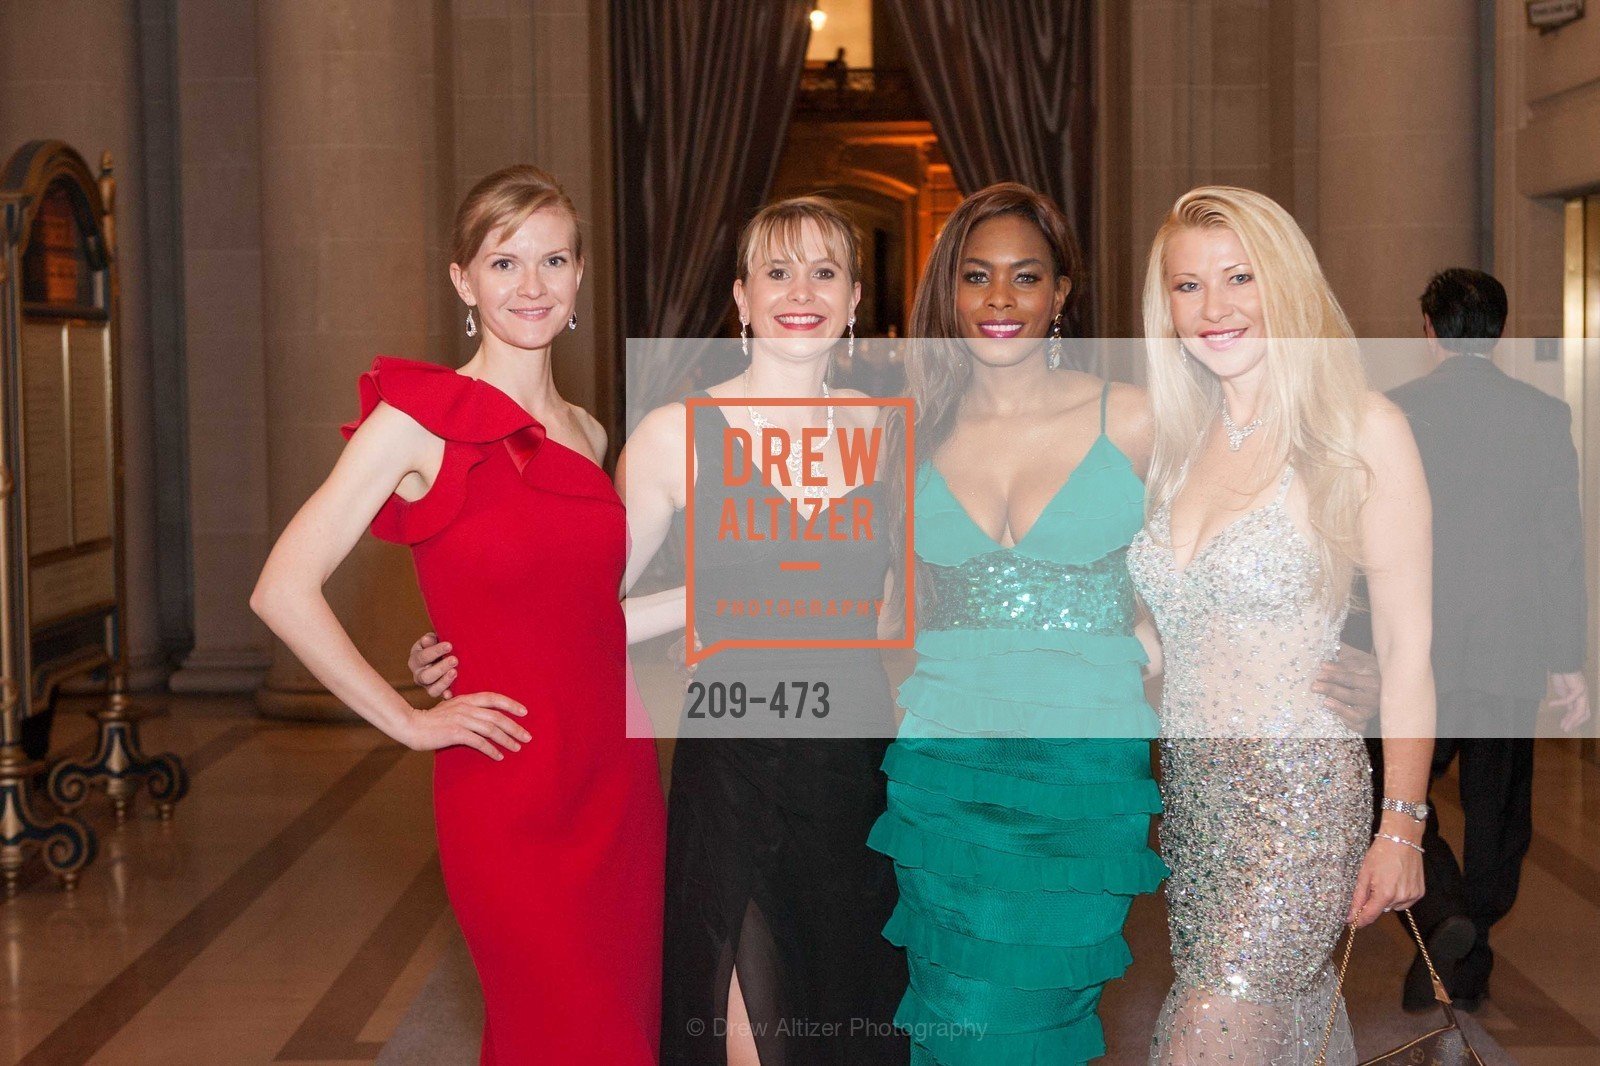 Greer Goings, Kelly Cramer, Vanessa Jean Baptiste, Lena Gikkas, ENCORE! at San Francisco BALLET'S 2014 Season Opening Night Gala, US. US, January 22nd, 2014